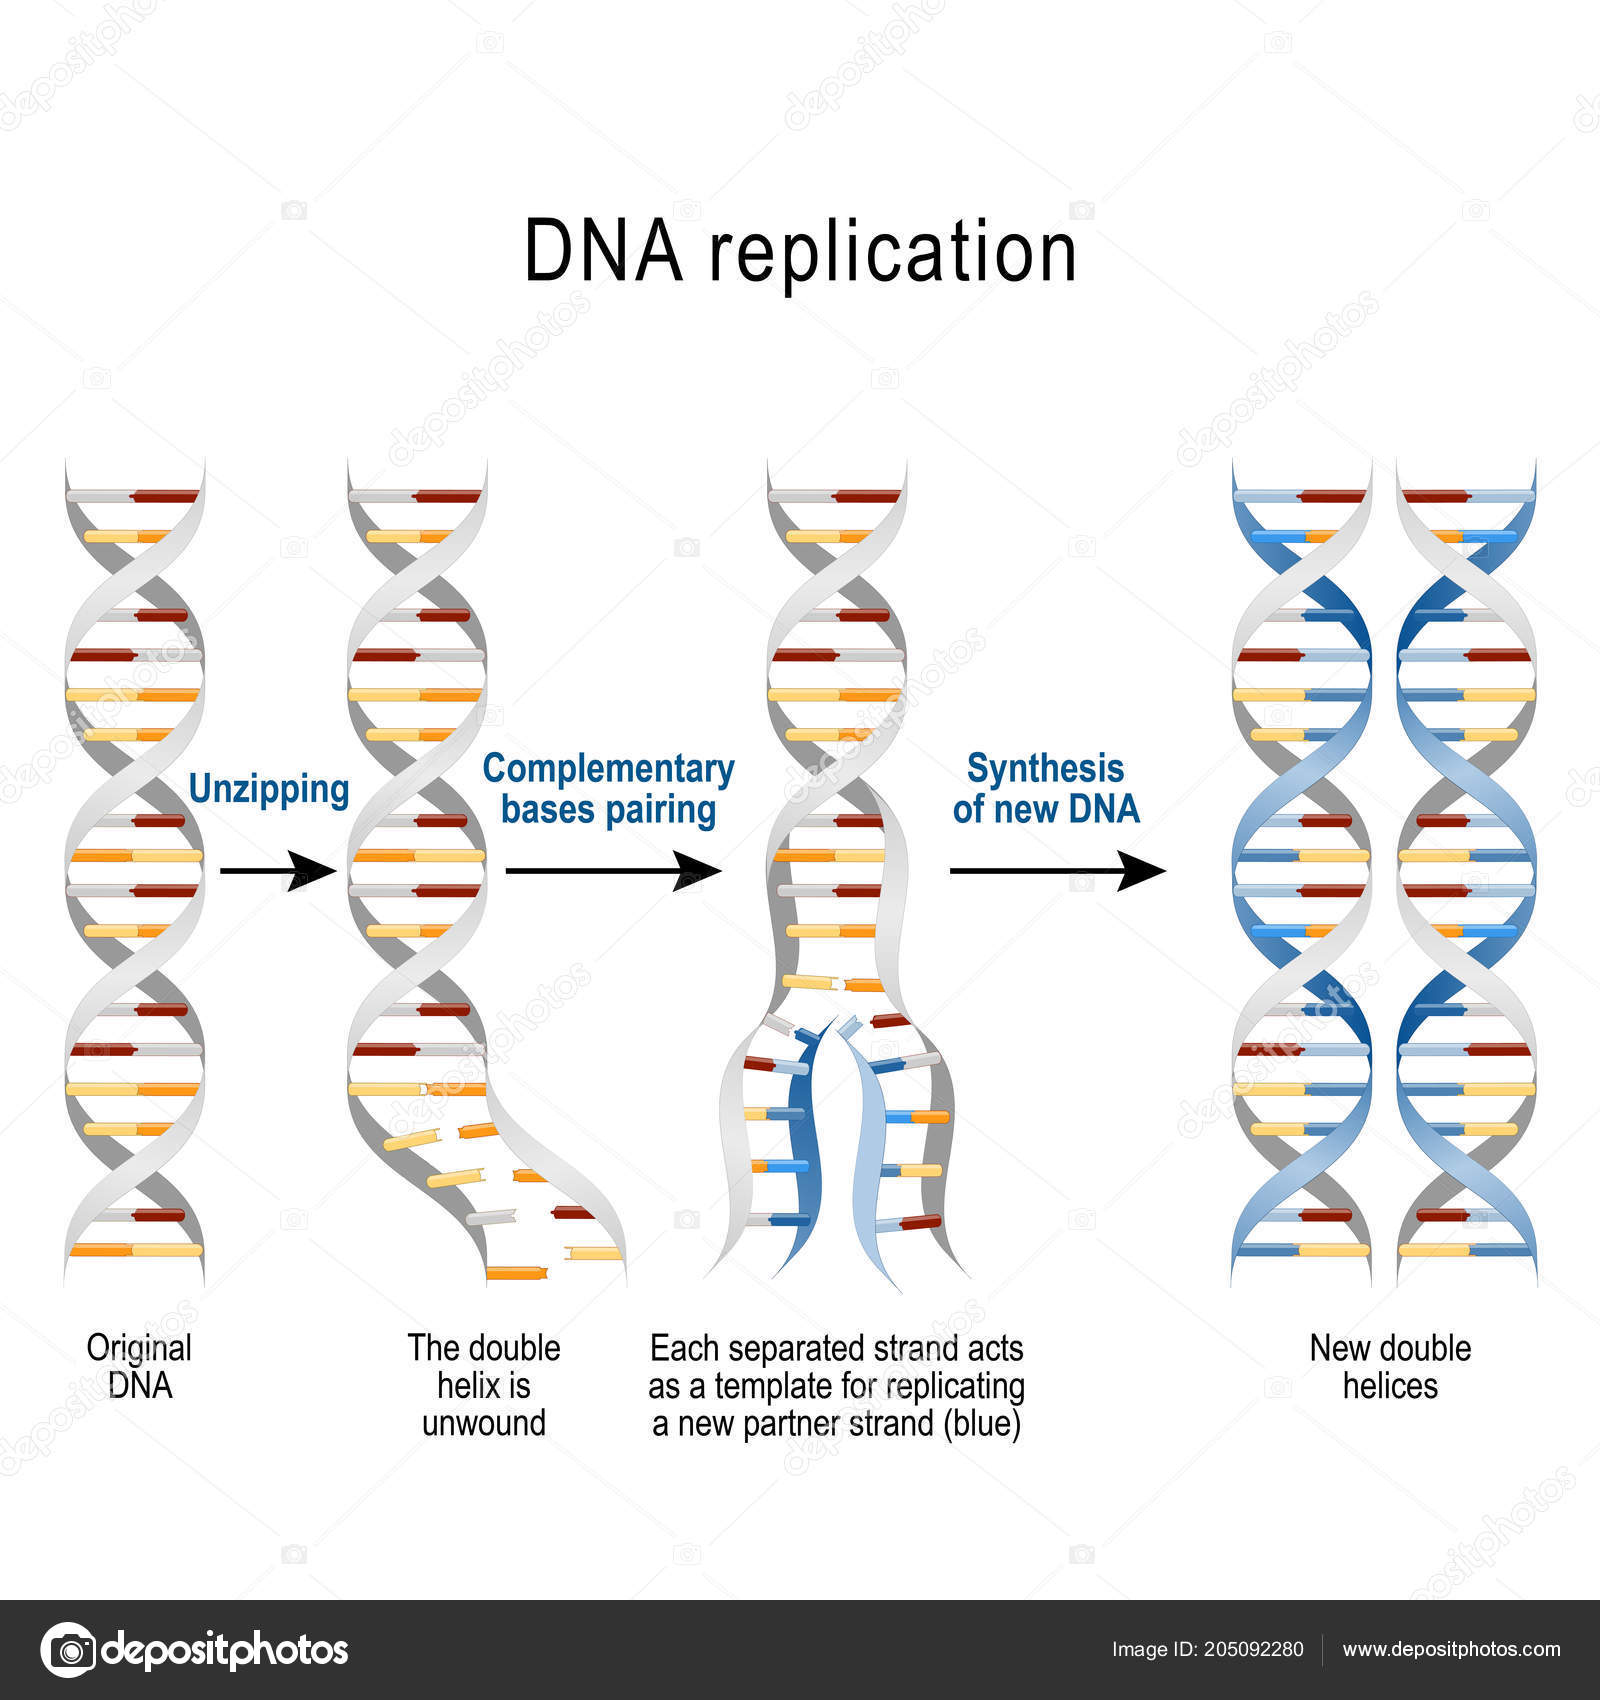 Dna Replication Steps Double Helix Unwound Each Separated